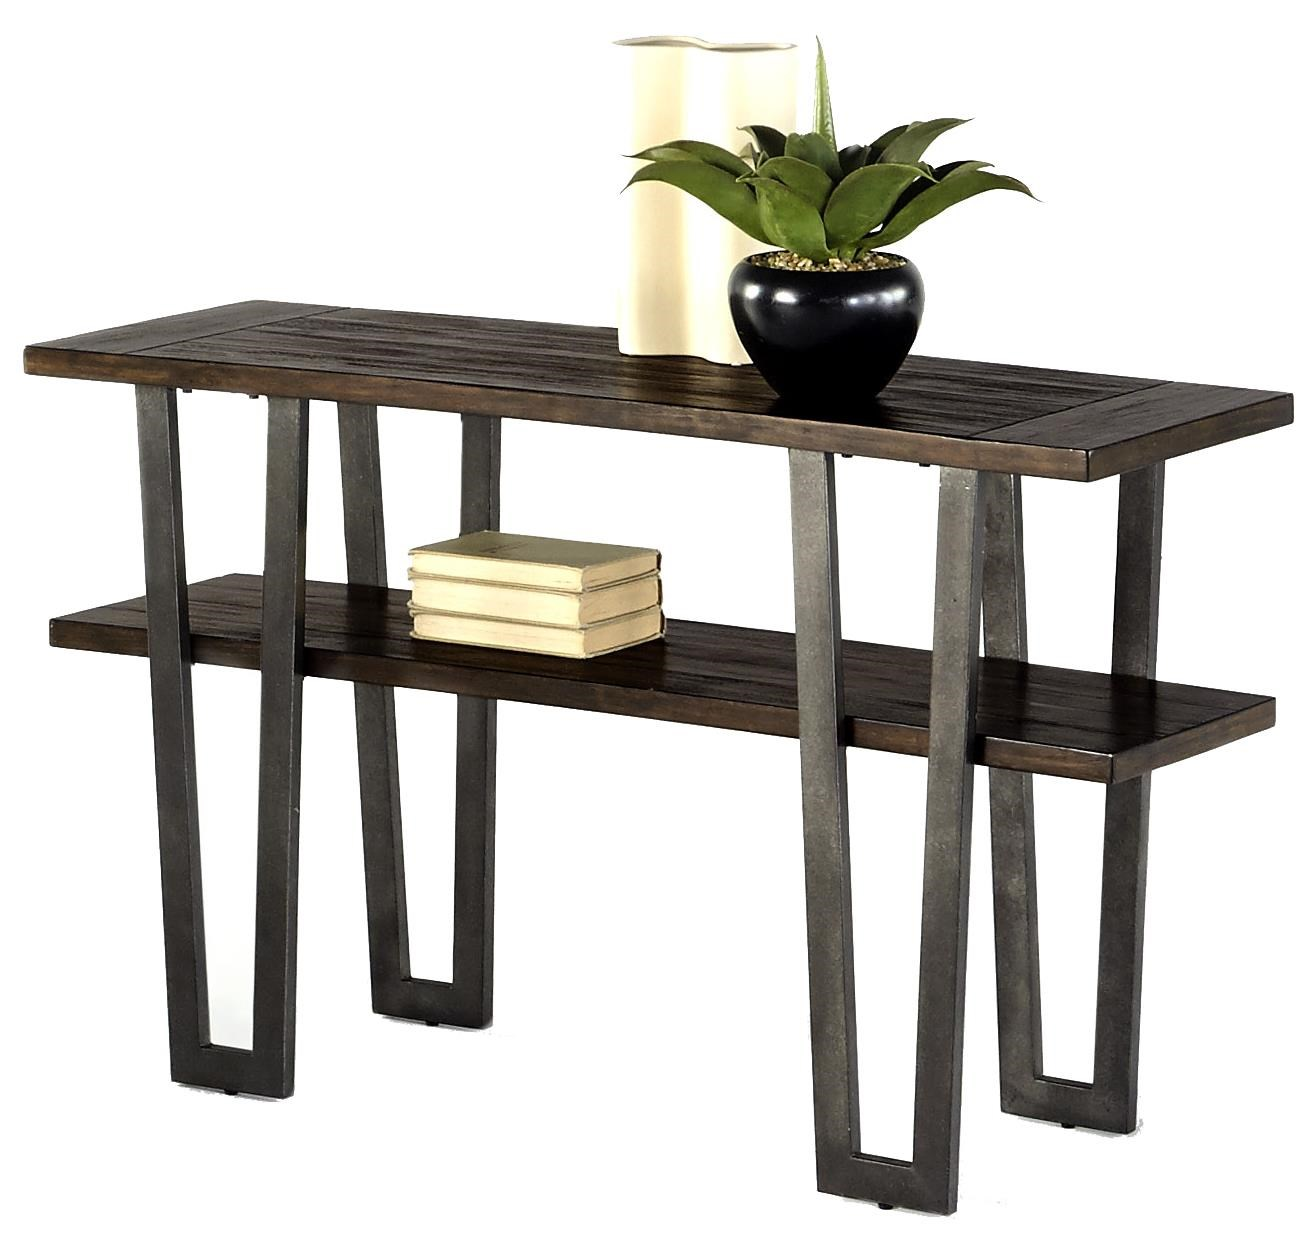 progressive furniture sedona modern rustic sofa table with weathered elm wood and metal legs